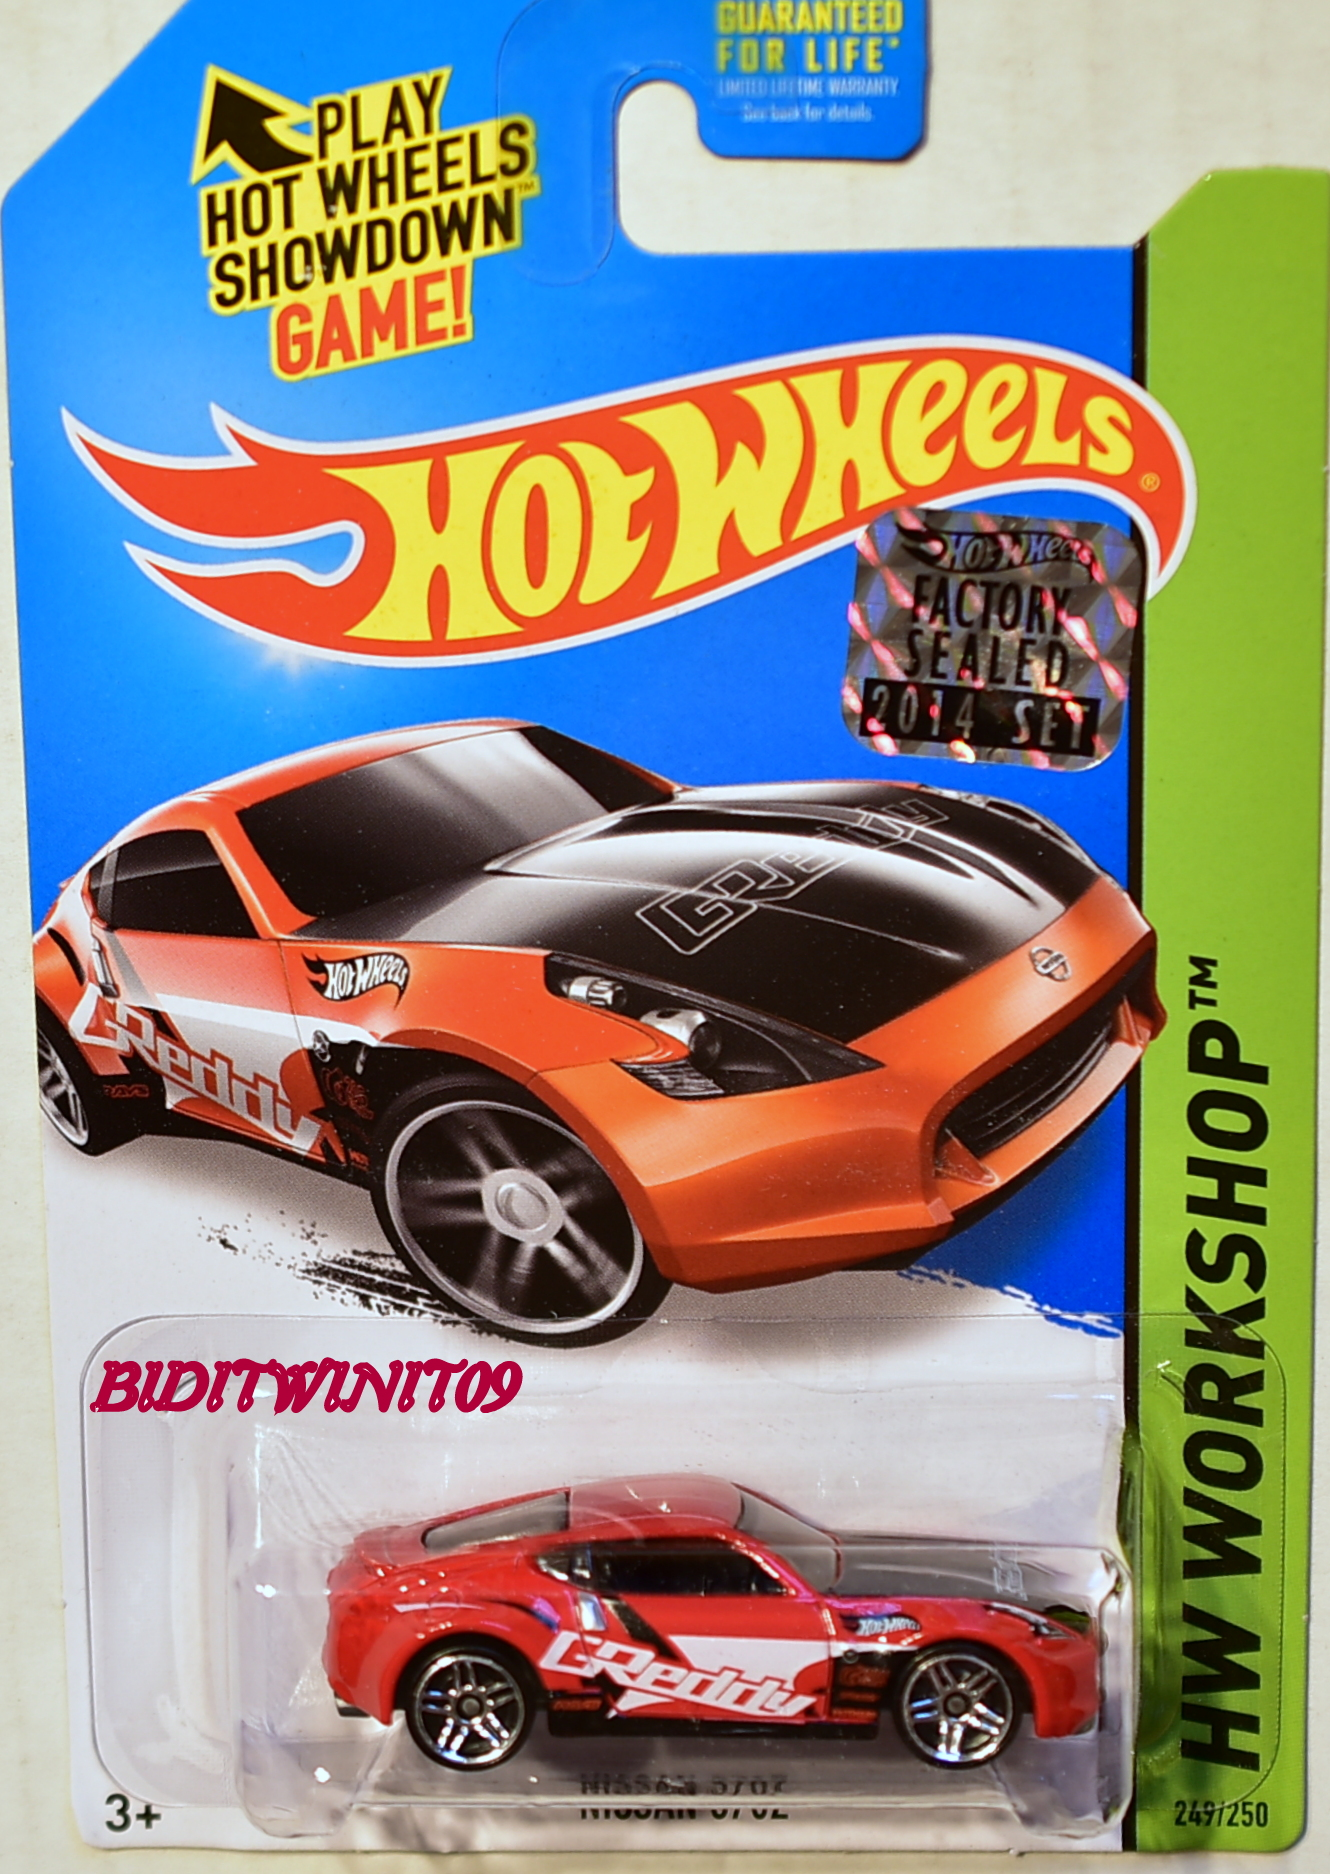 HOT WHEELS 2014 HW WORKSHOP NISSAN 370Z FACTORY SEALED RED